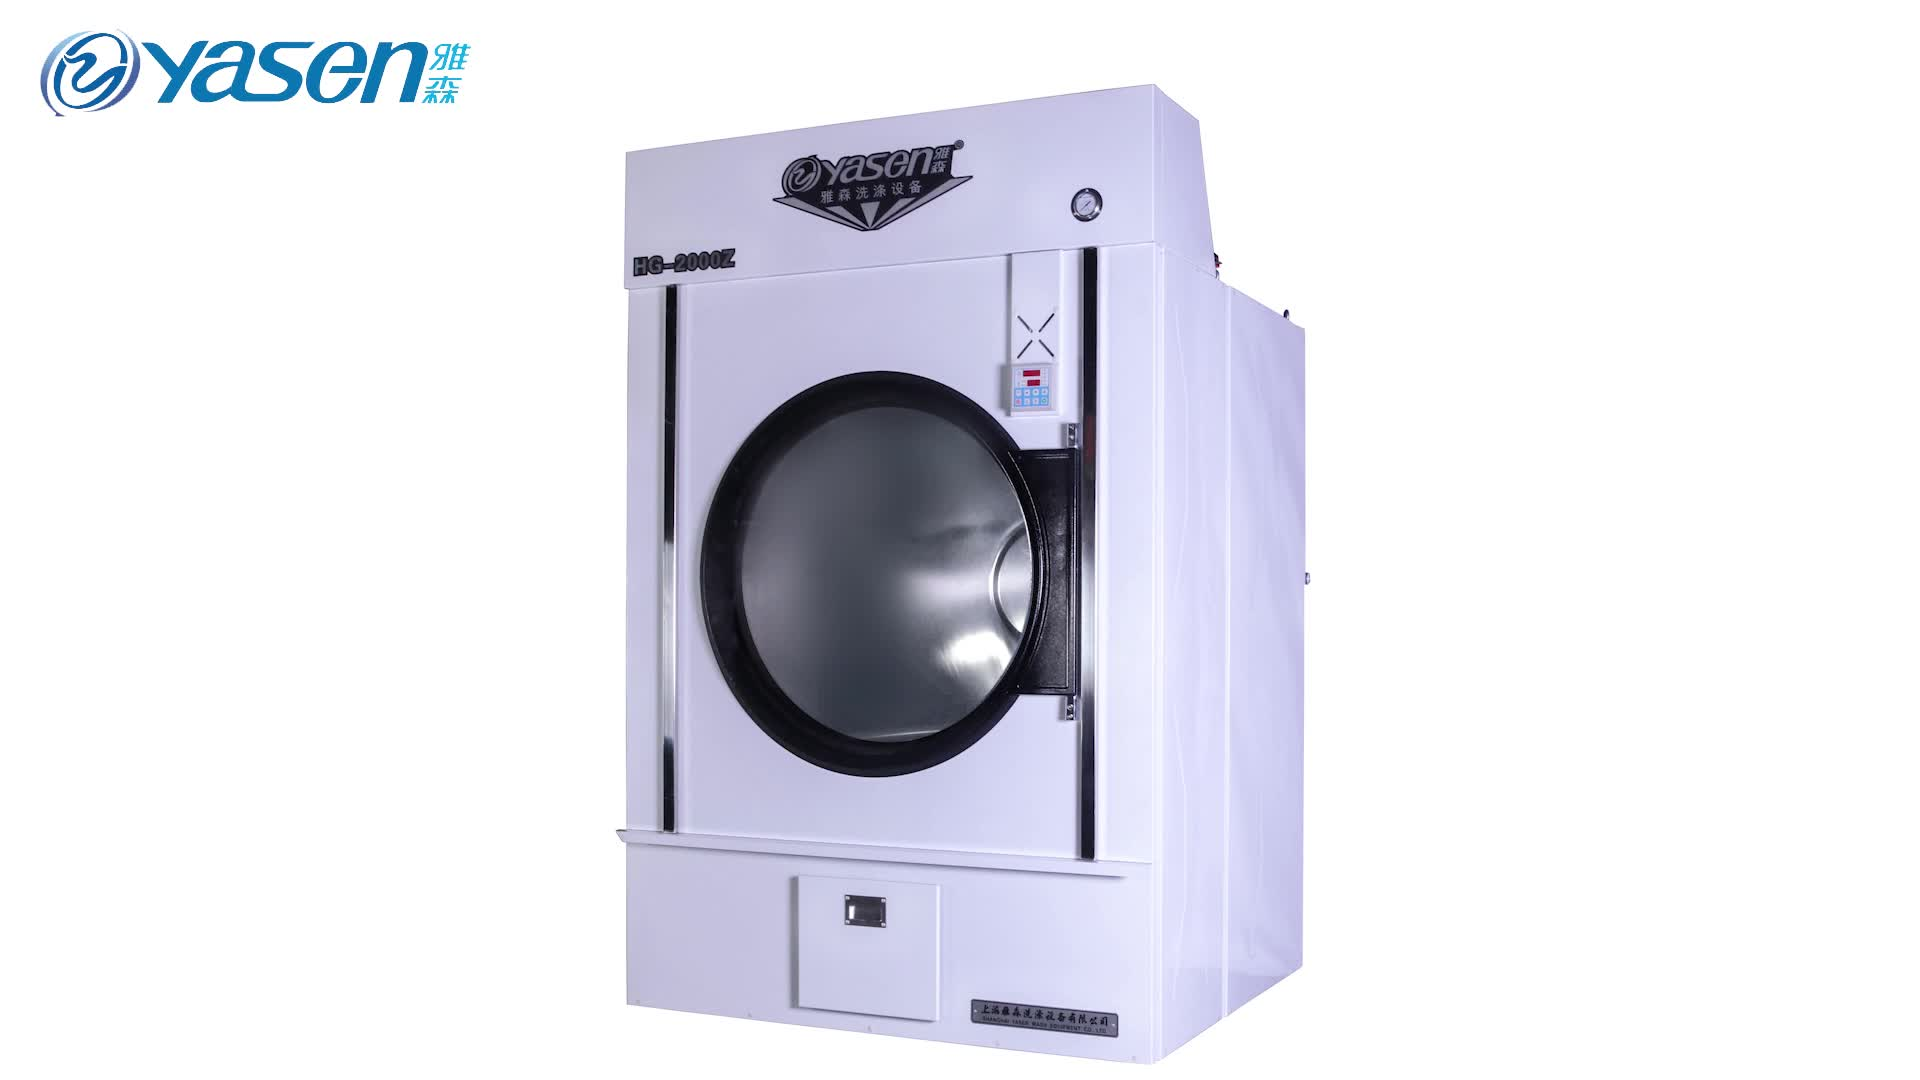 clothes Green Tumble Clothes Dryer Machine For Sale